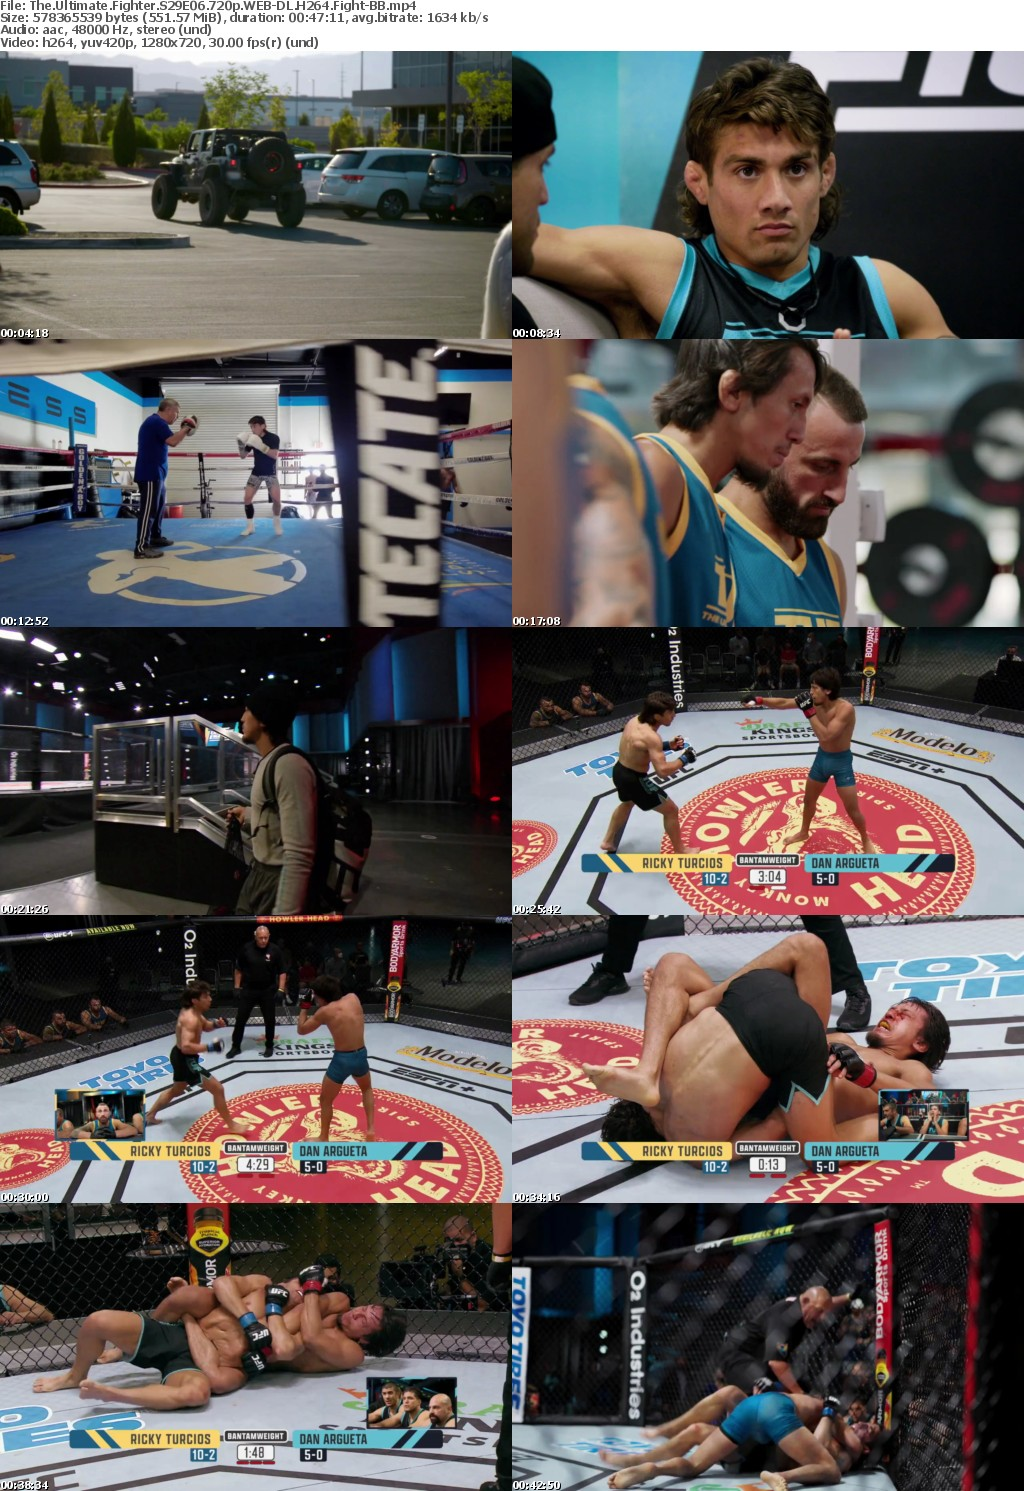 The Ultimate Fighter S29E06 720p WEB-DL H264 Fight-BB